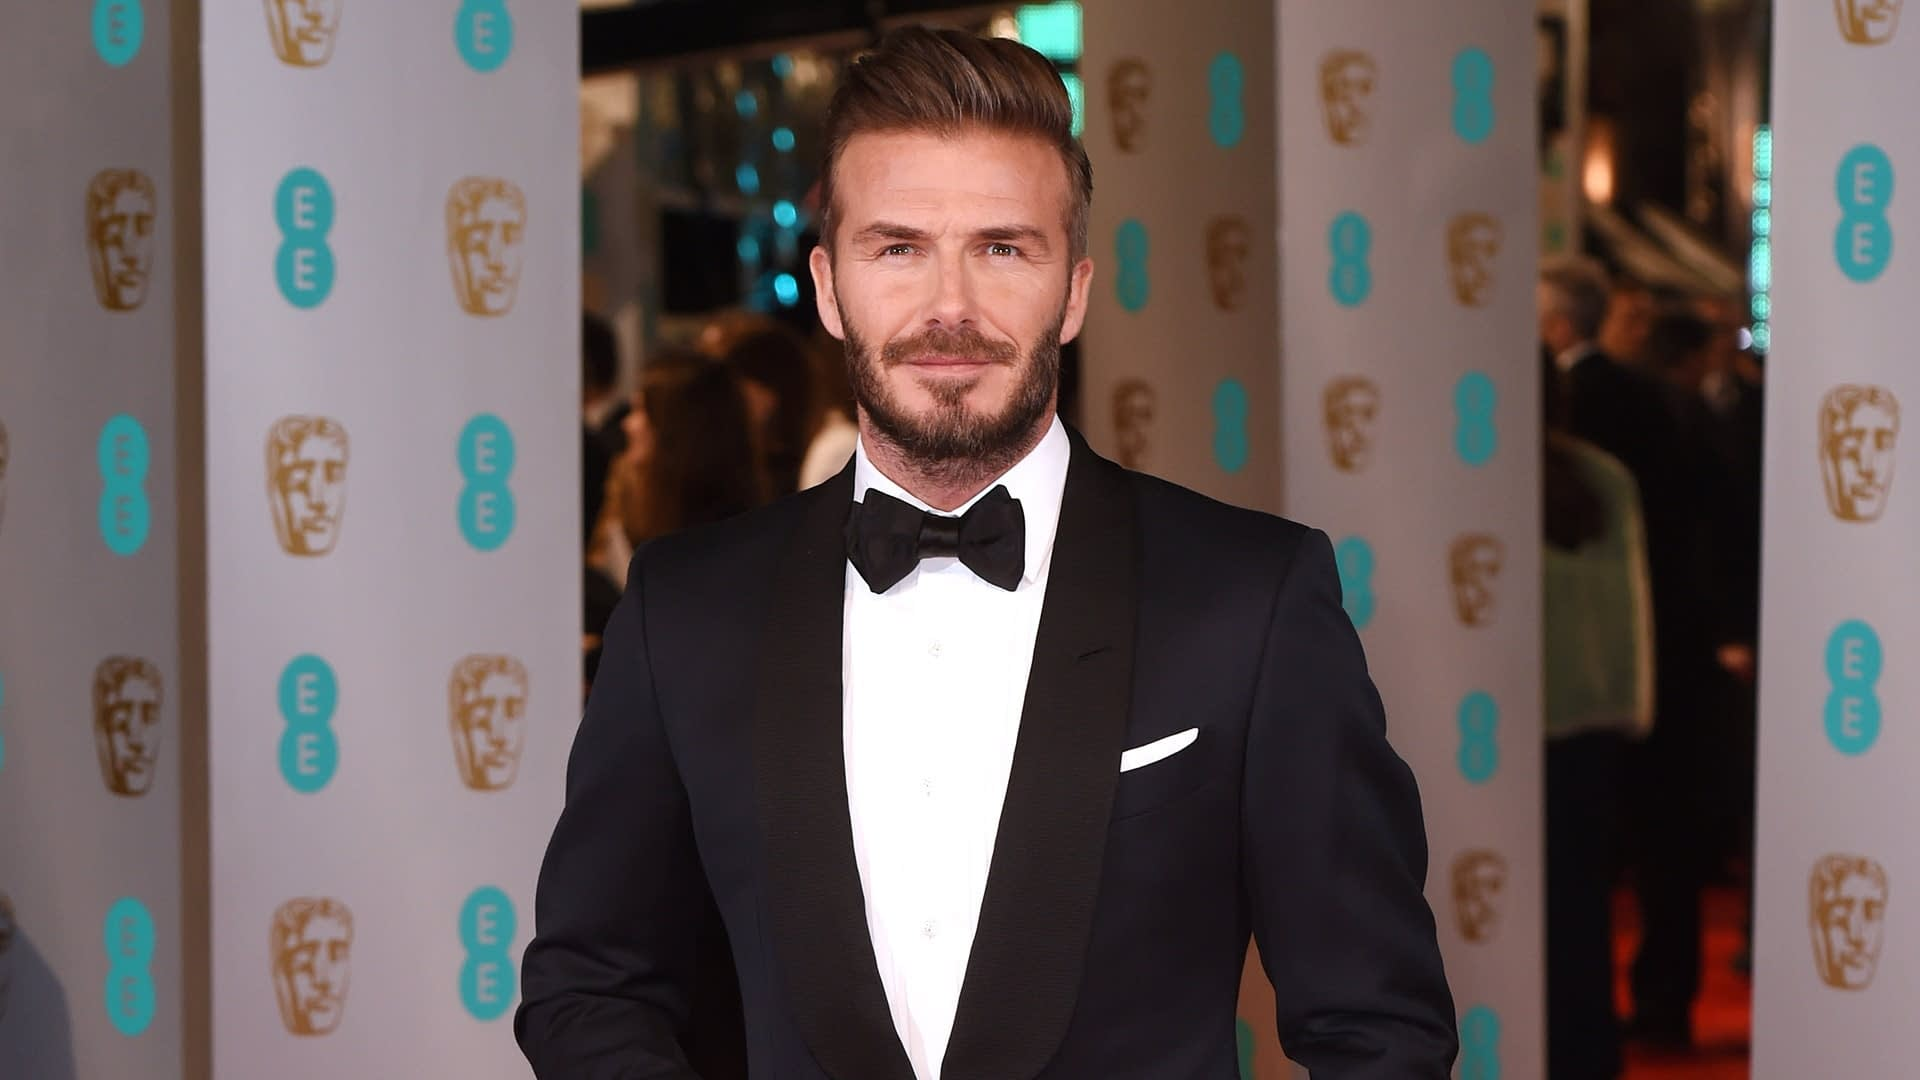 celebrity david beckham in tuxedo hair transplant